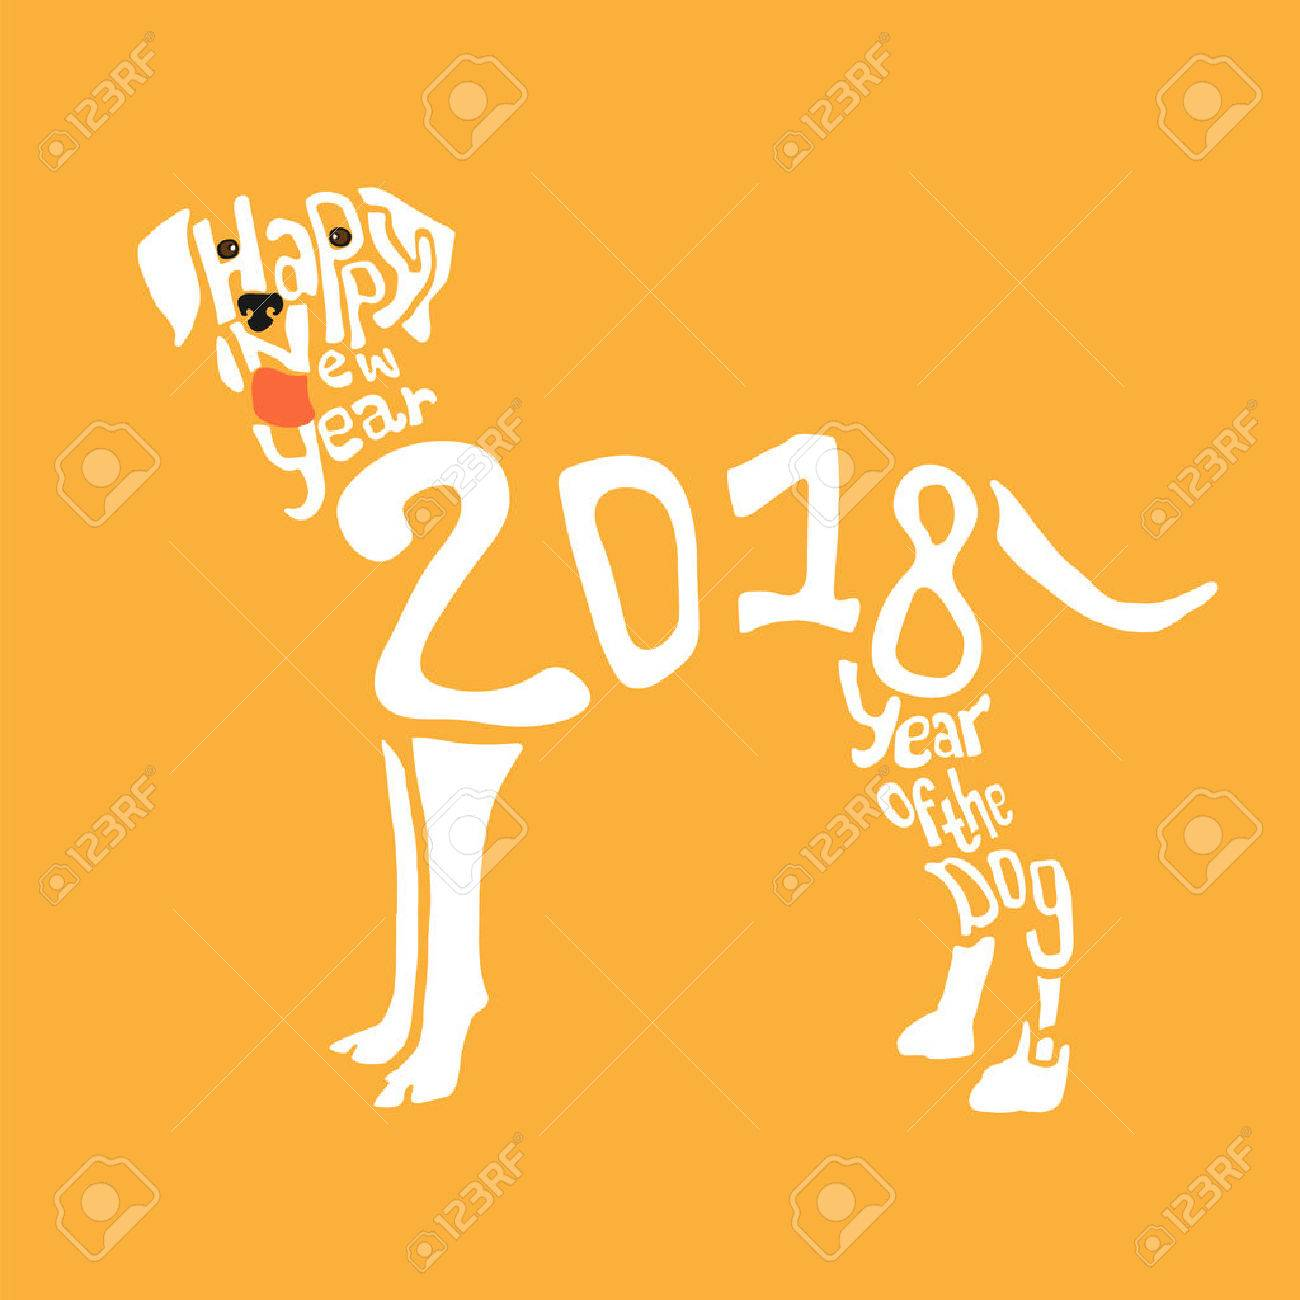 2018 happy new year greeting card design stock vector 85612313